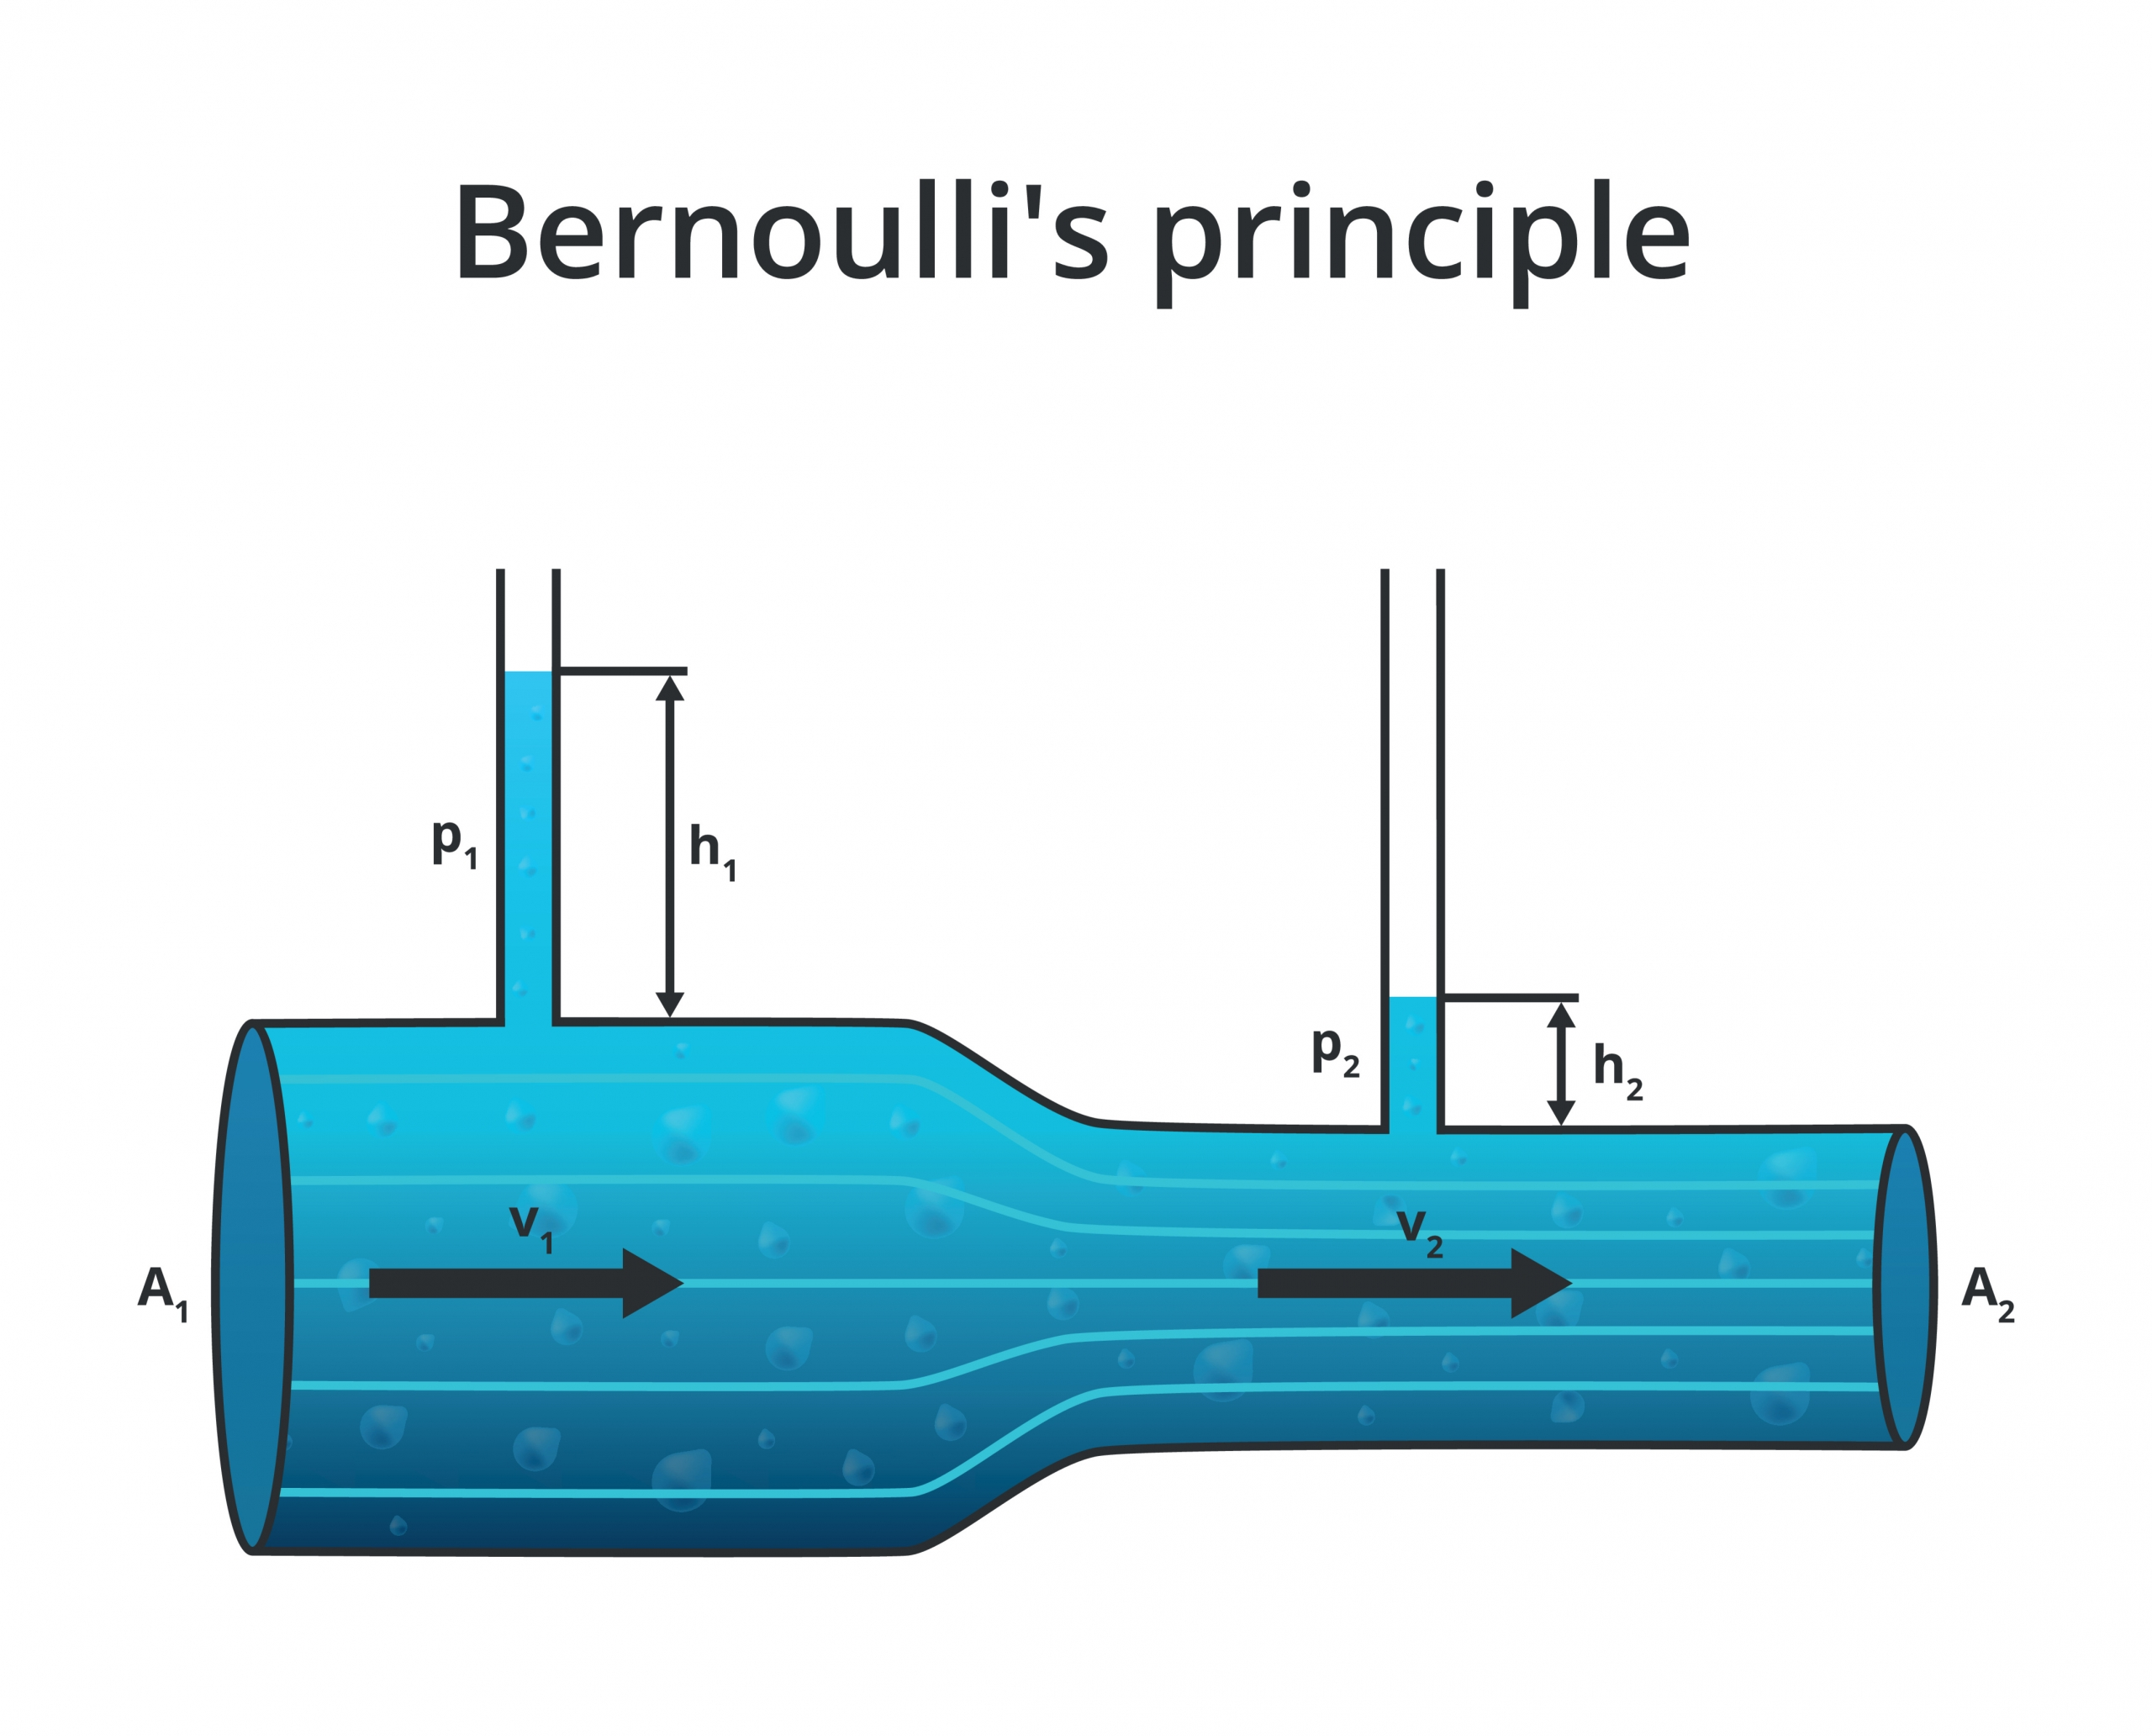 This graphic shows fluid flowing through area of larger diameter and smaller diameter (vena contracta). In the vena contracta, fluid velocity increases and fluid pressure decreases per Bernoulli's Principle (Bernoulli's Equation).